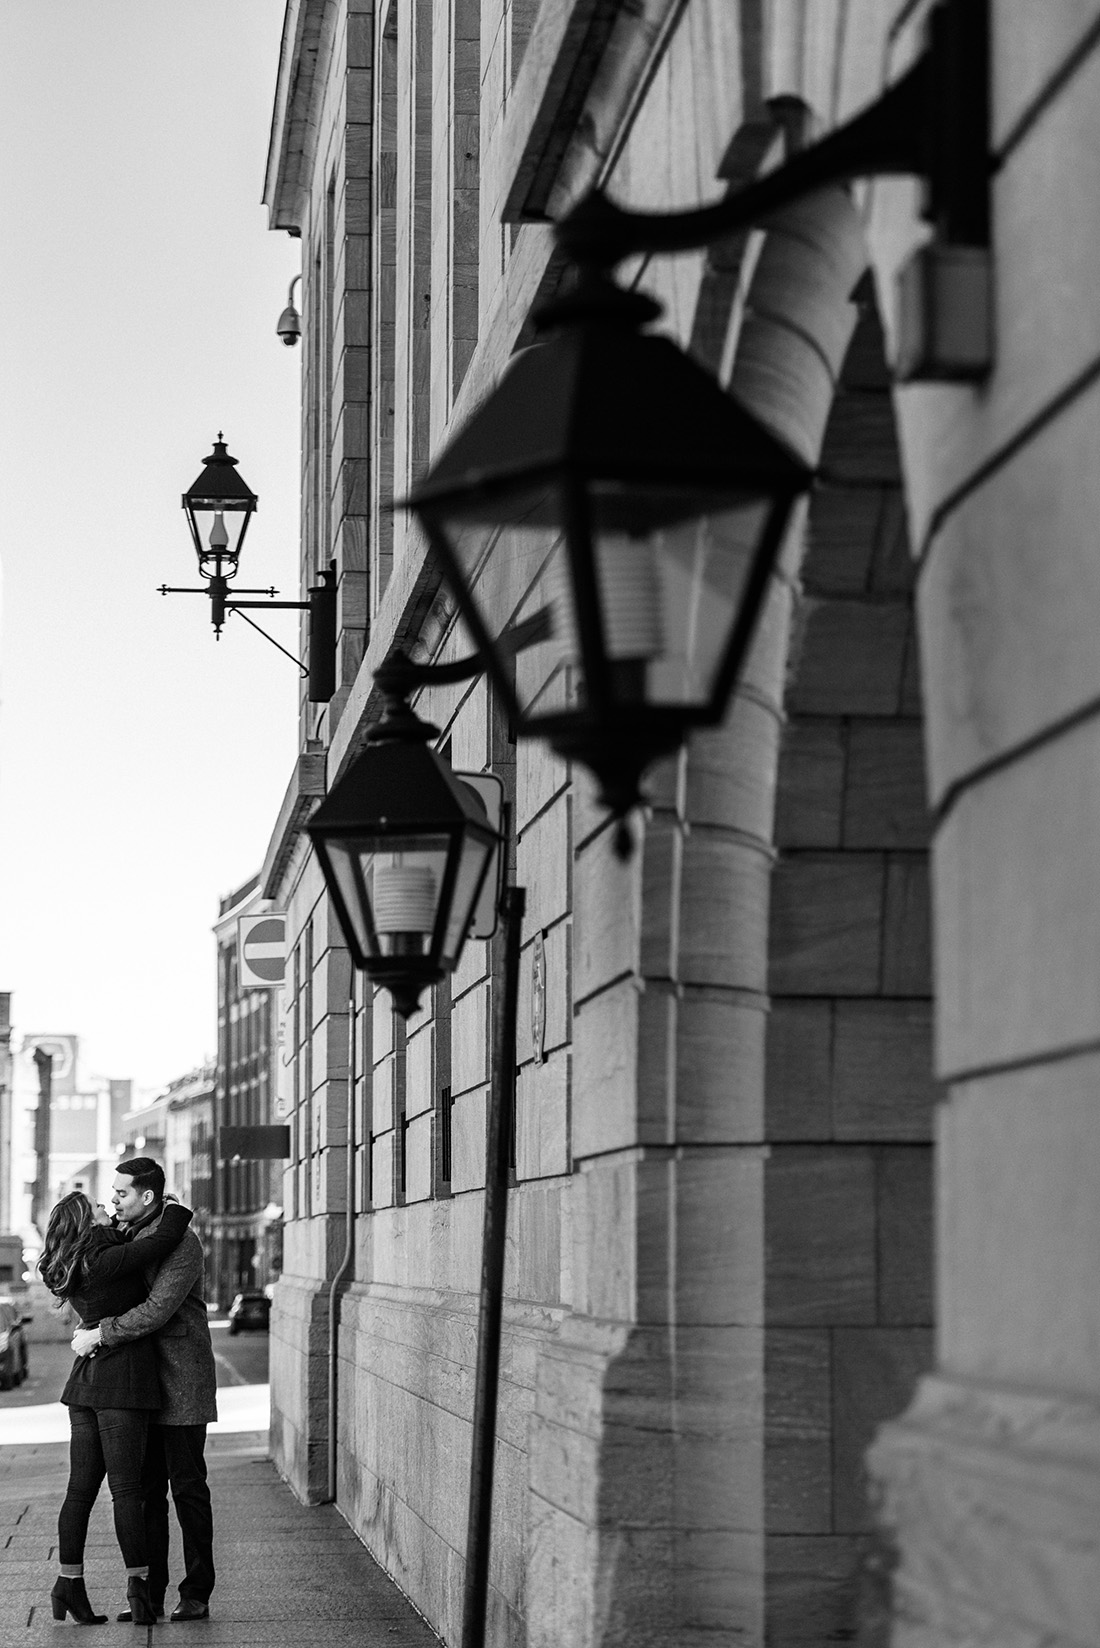 Black and white engagement photo in Old Montreal, Quebec